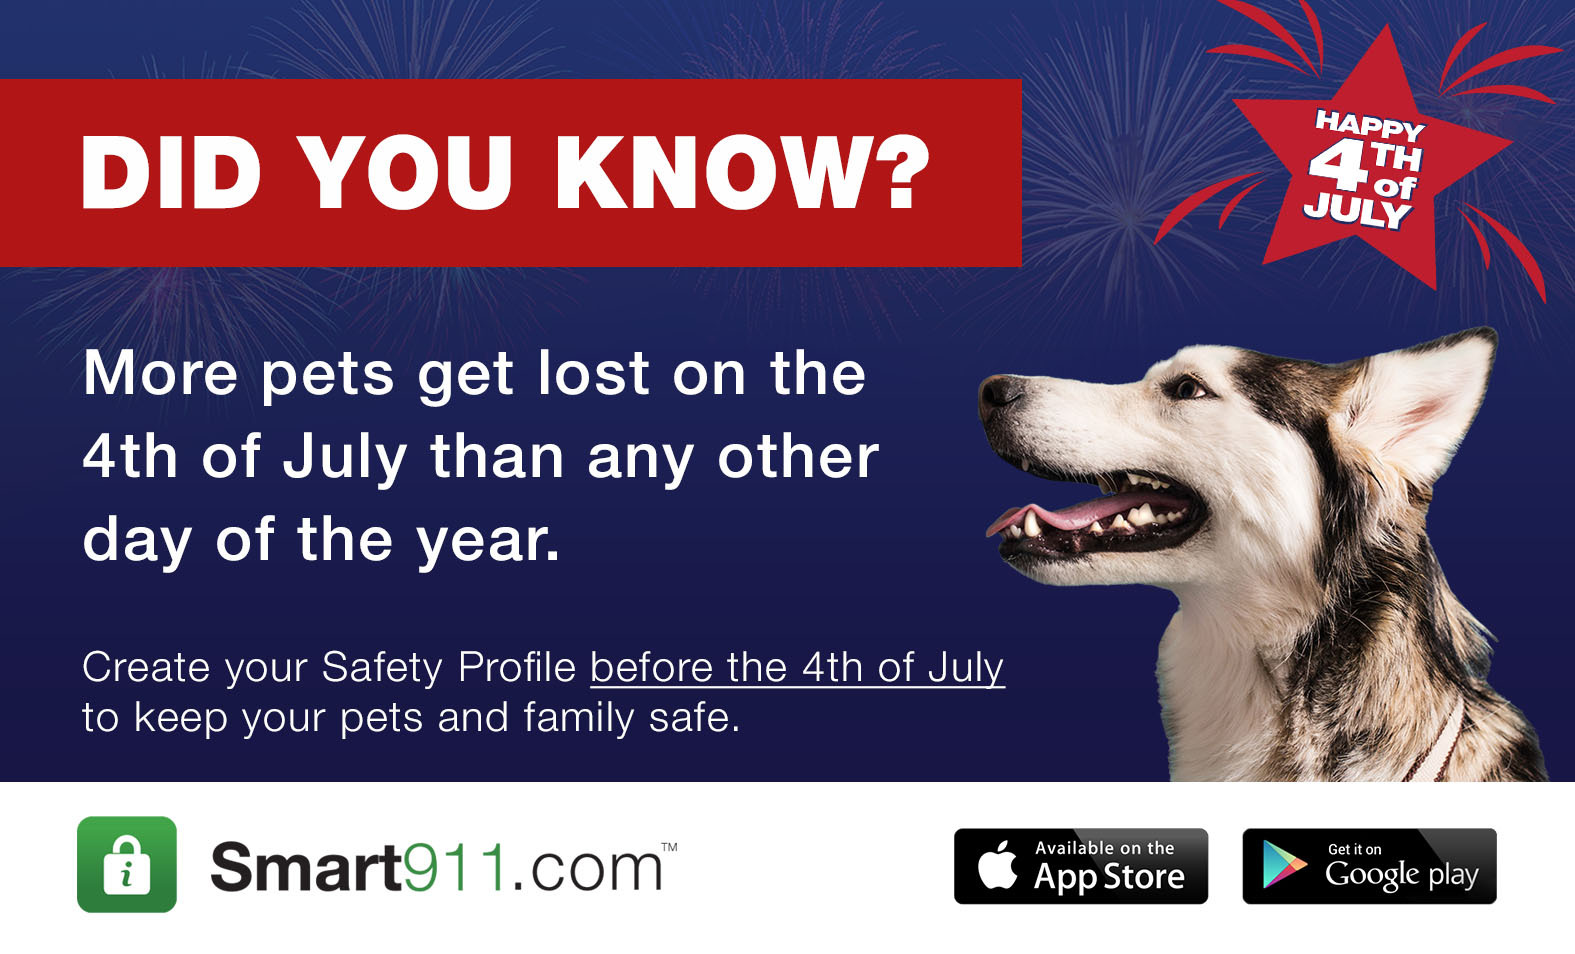 S911-_4th_of_July_2020-_Dogs-3